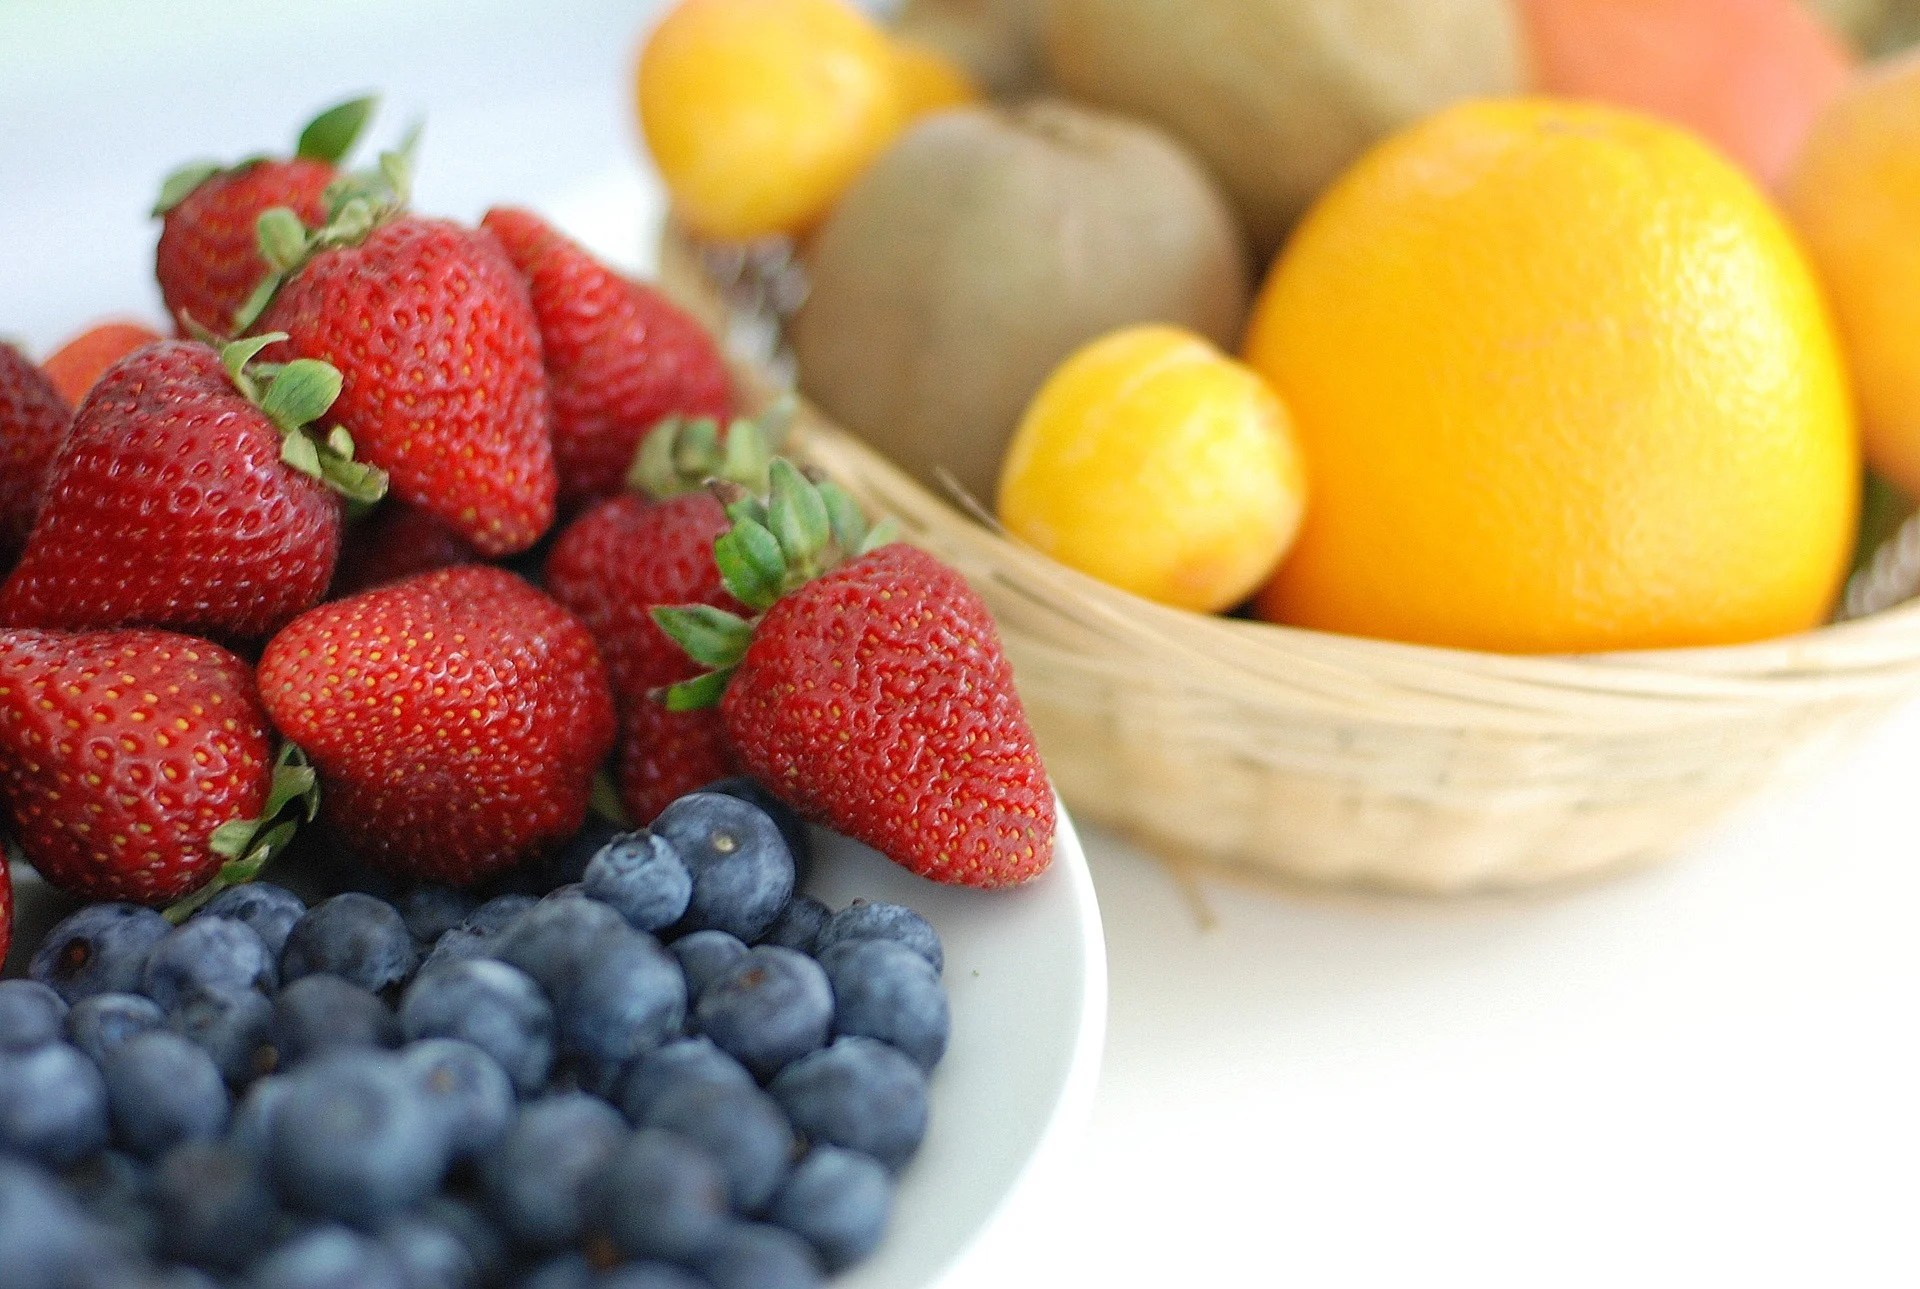 Fruit - Strawberries, Blueberries and Oranges